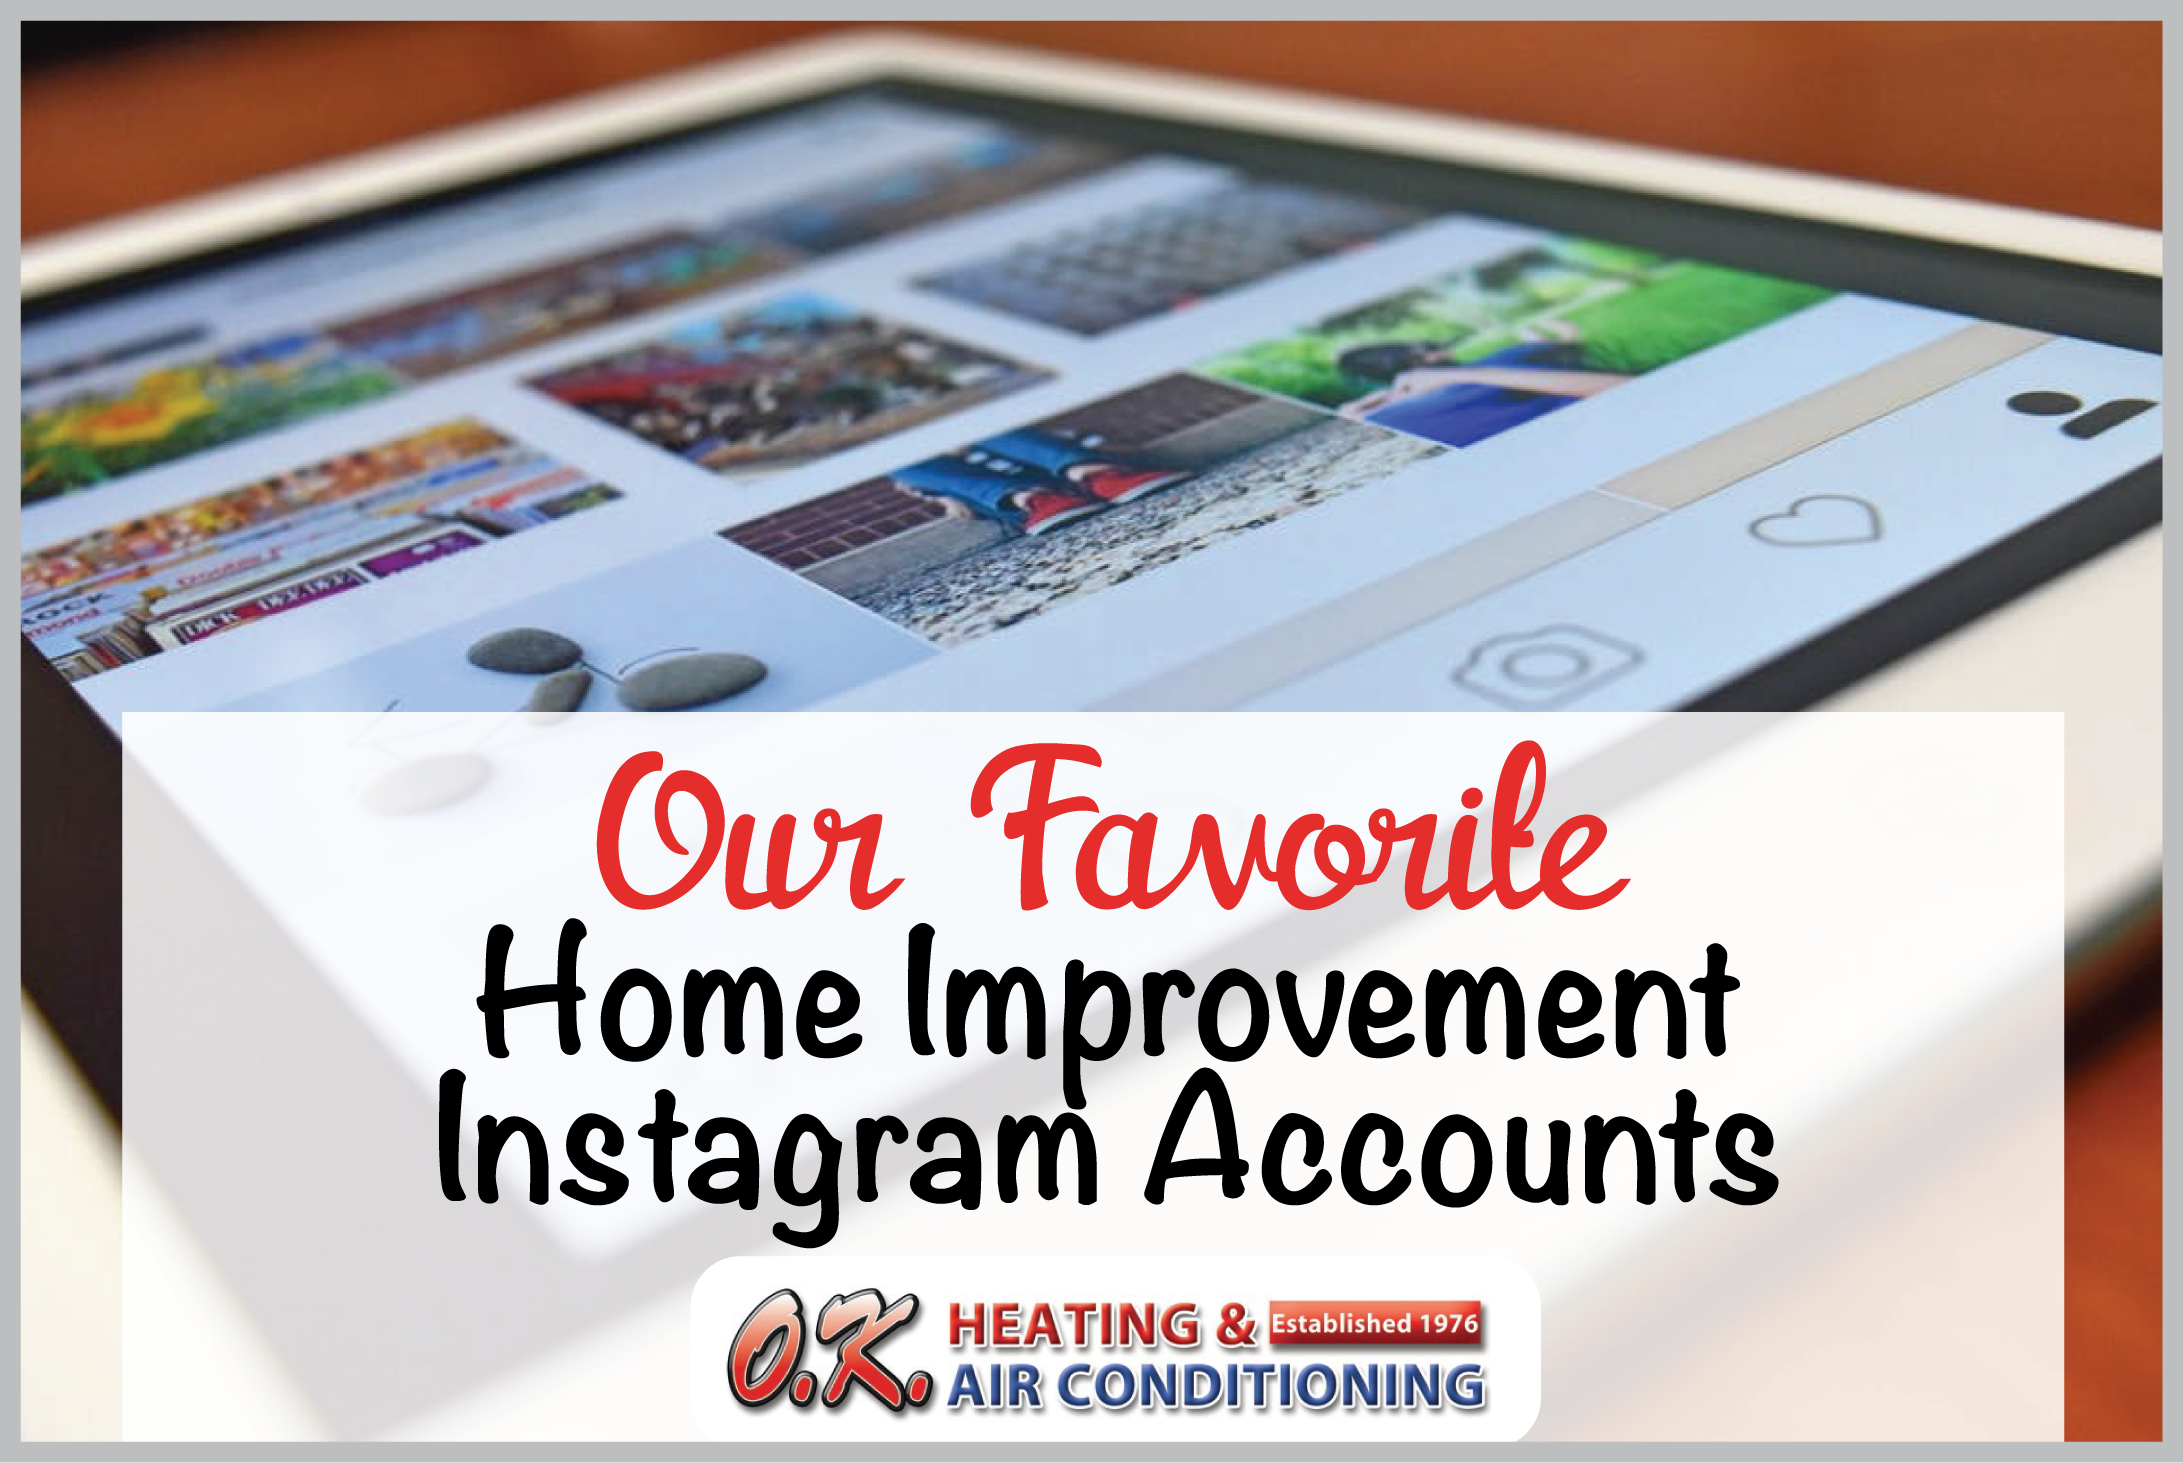 home-improvement-Instagram-accounts